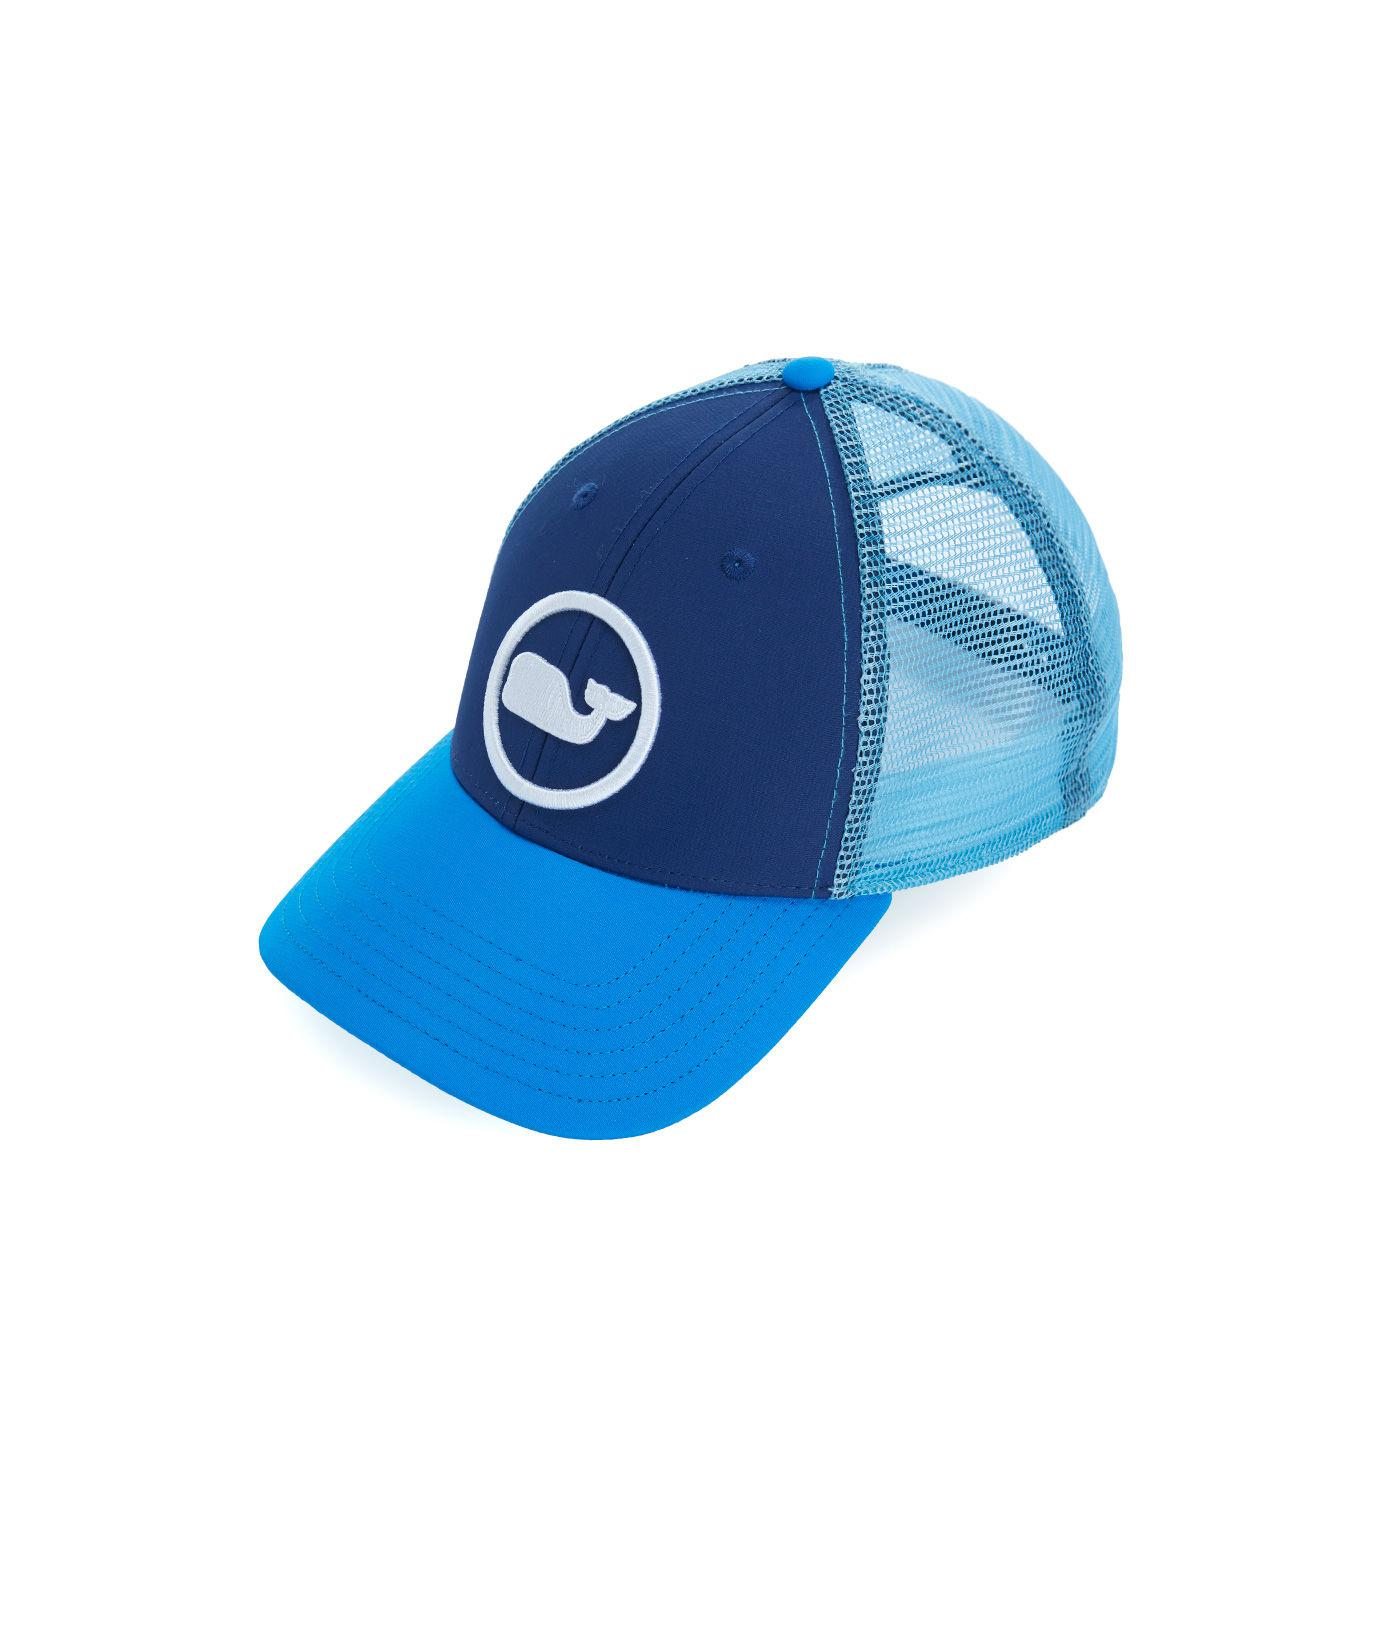 d5707851 Lyst - Vineyard Vines Big & Tall Whale Dot Trucker Hat in Blue for ...